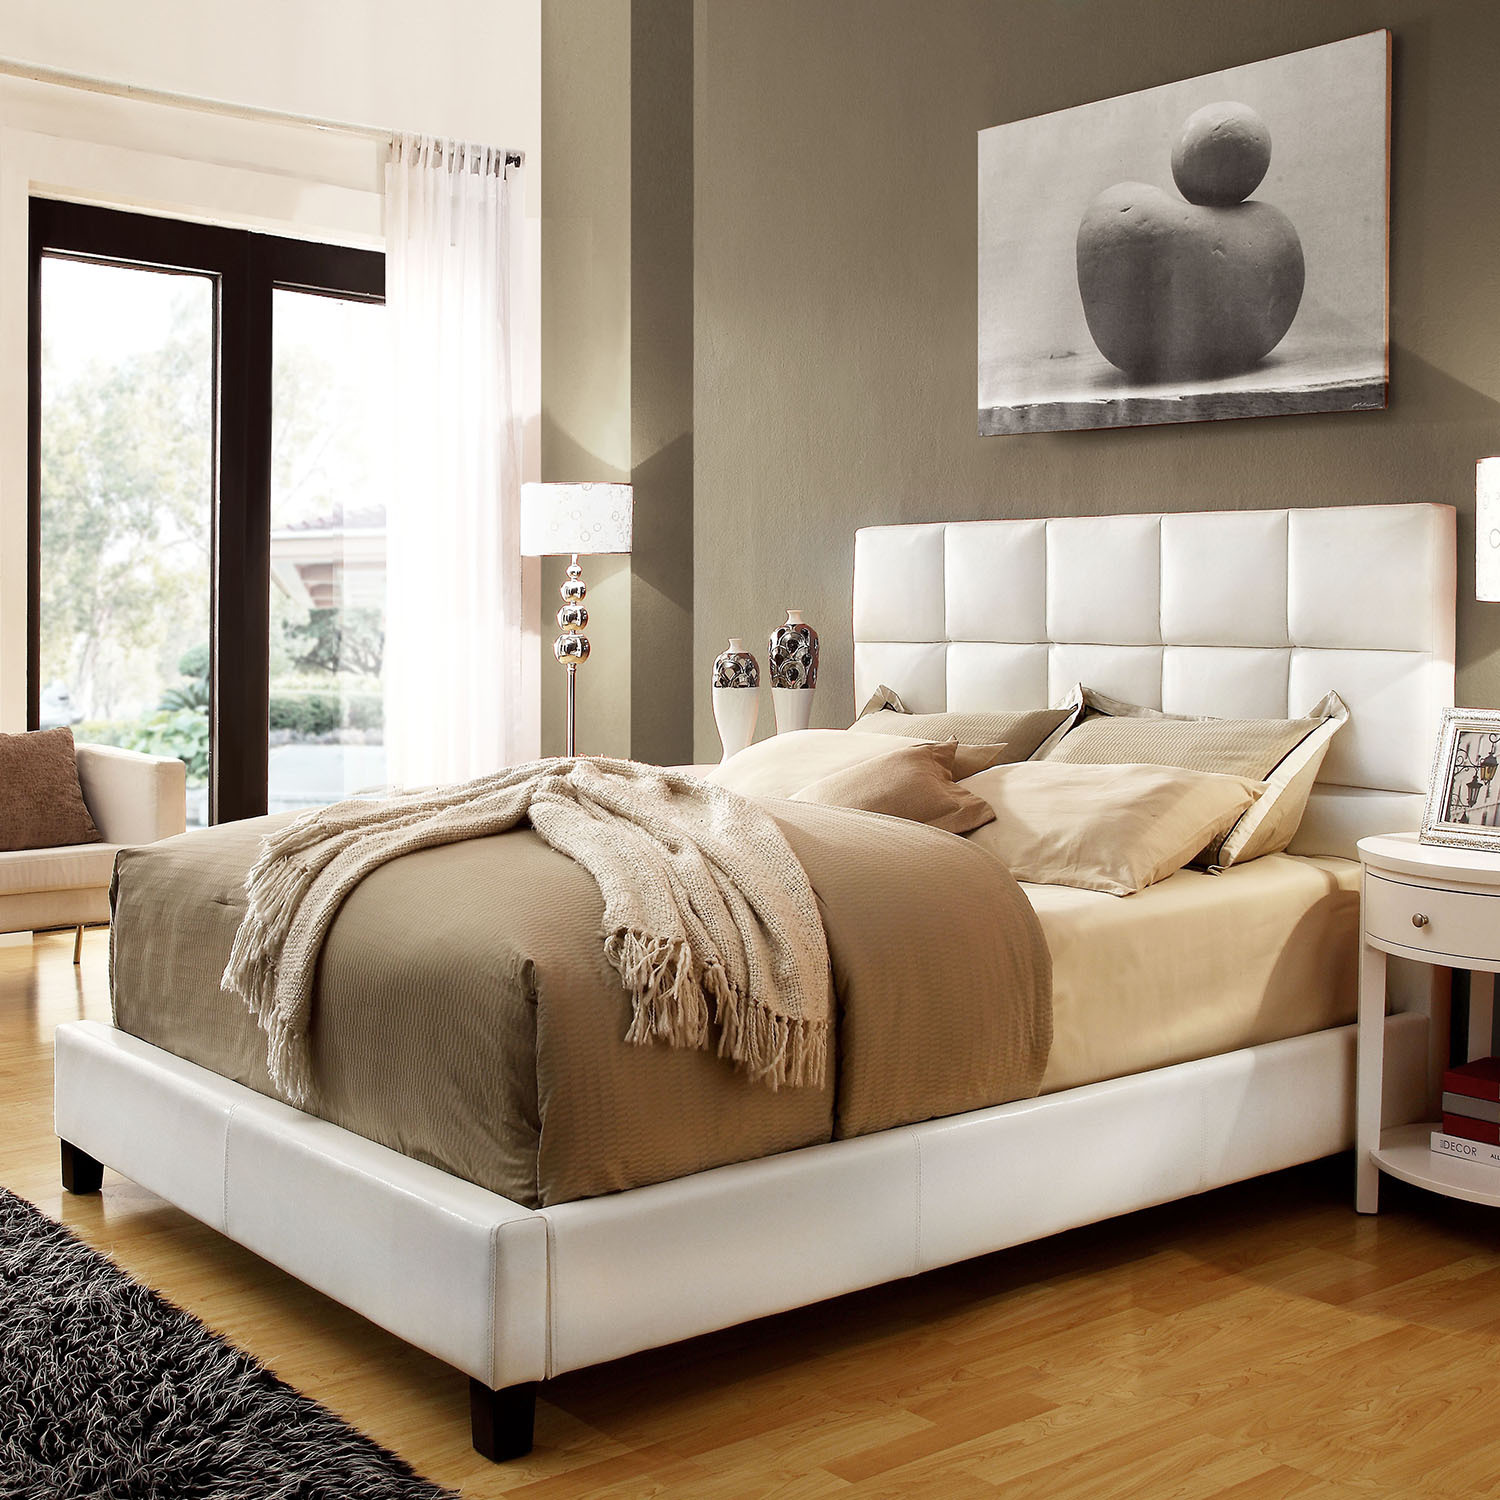 White Faux Leather Queen Size Bed 1500 x 1500